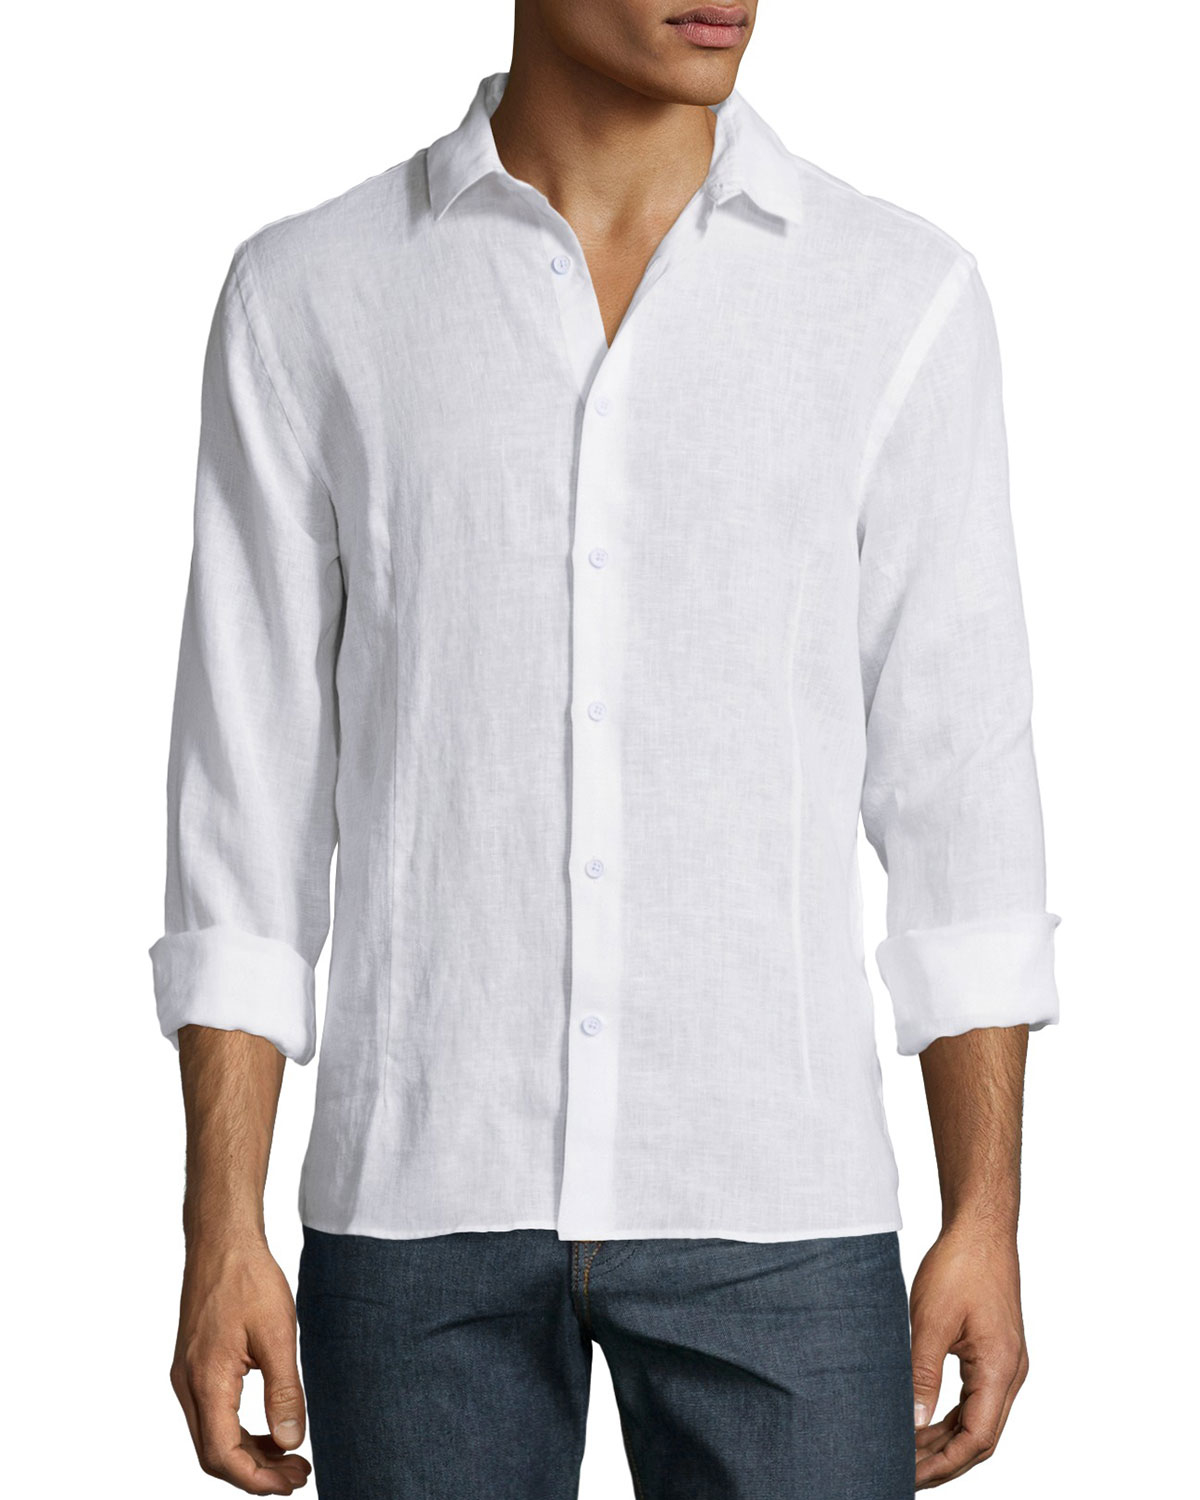 orlebar brown solid long sleeve linen shirt in white for